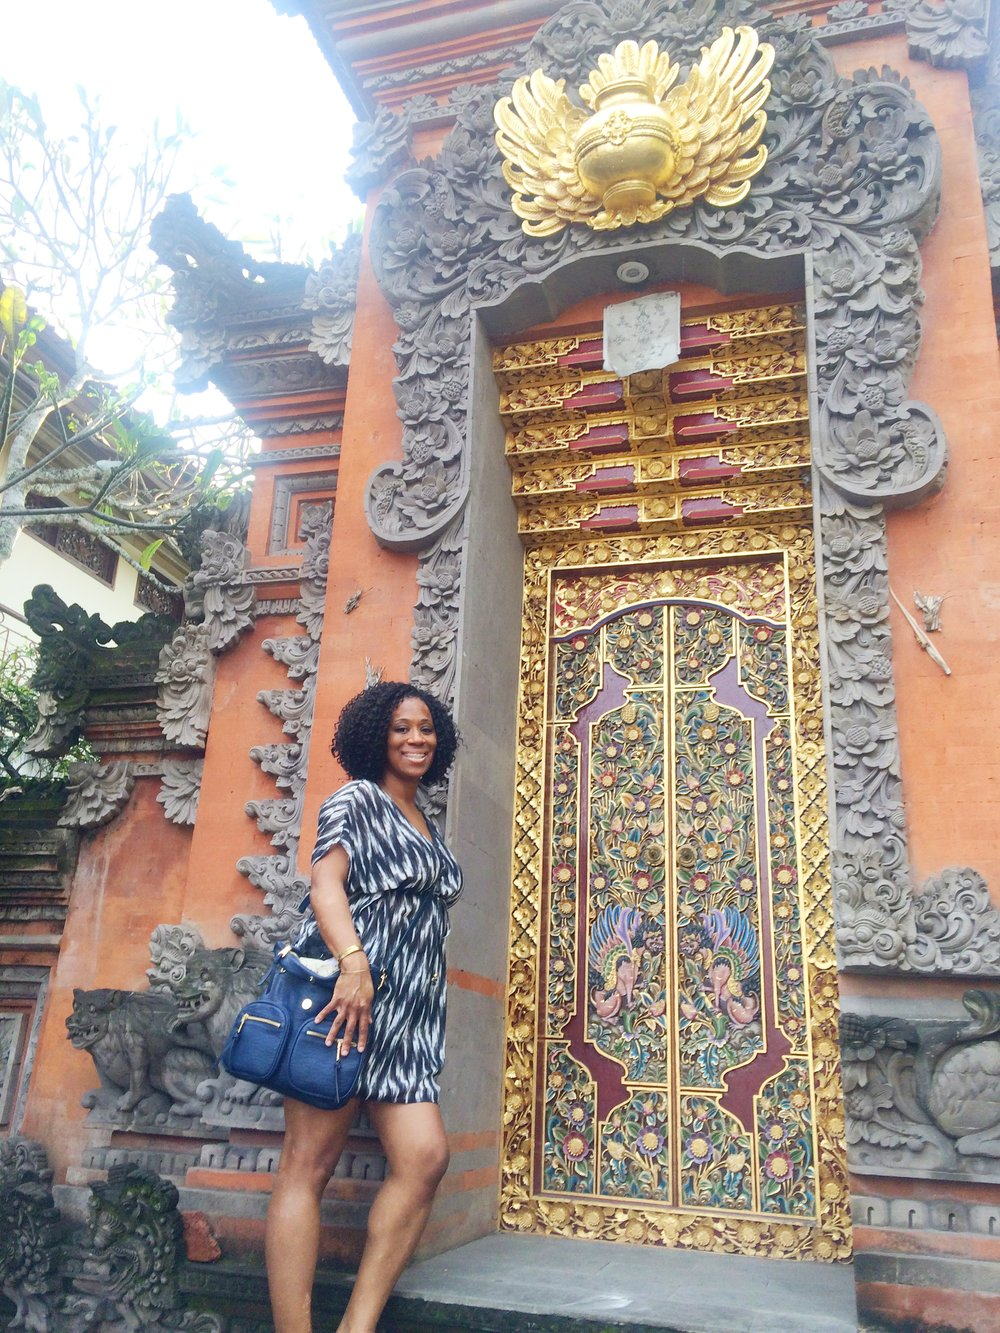 Dayka-Robinson-Bali-Woman-Solo-International-Black-Woman-Travel-Ubud-2016-14.jpg